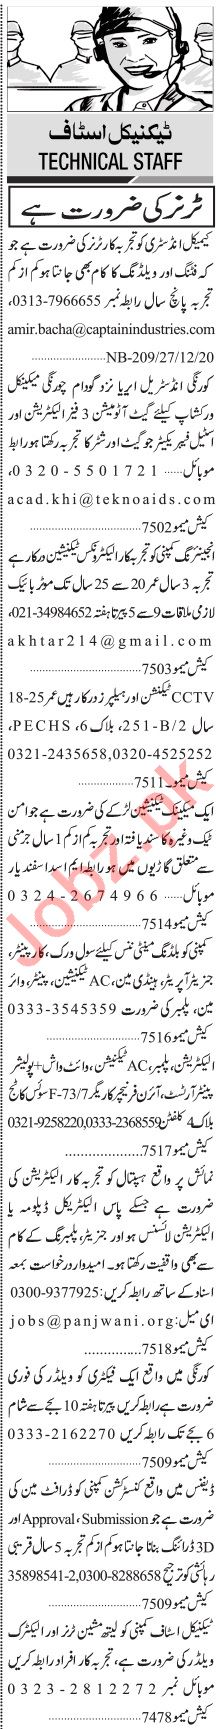 Jang Sunday Classified Ads 27 Dec 2020 for Technical Staff